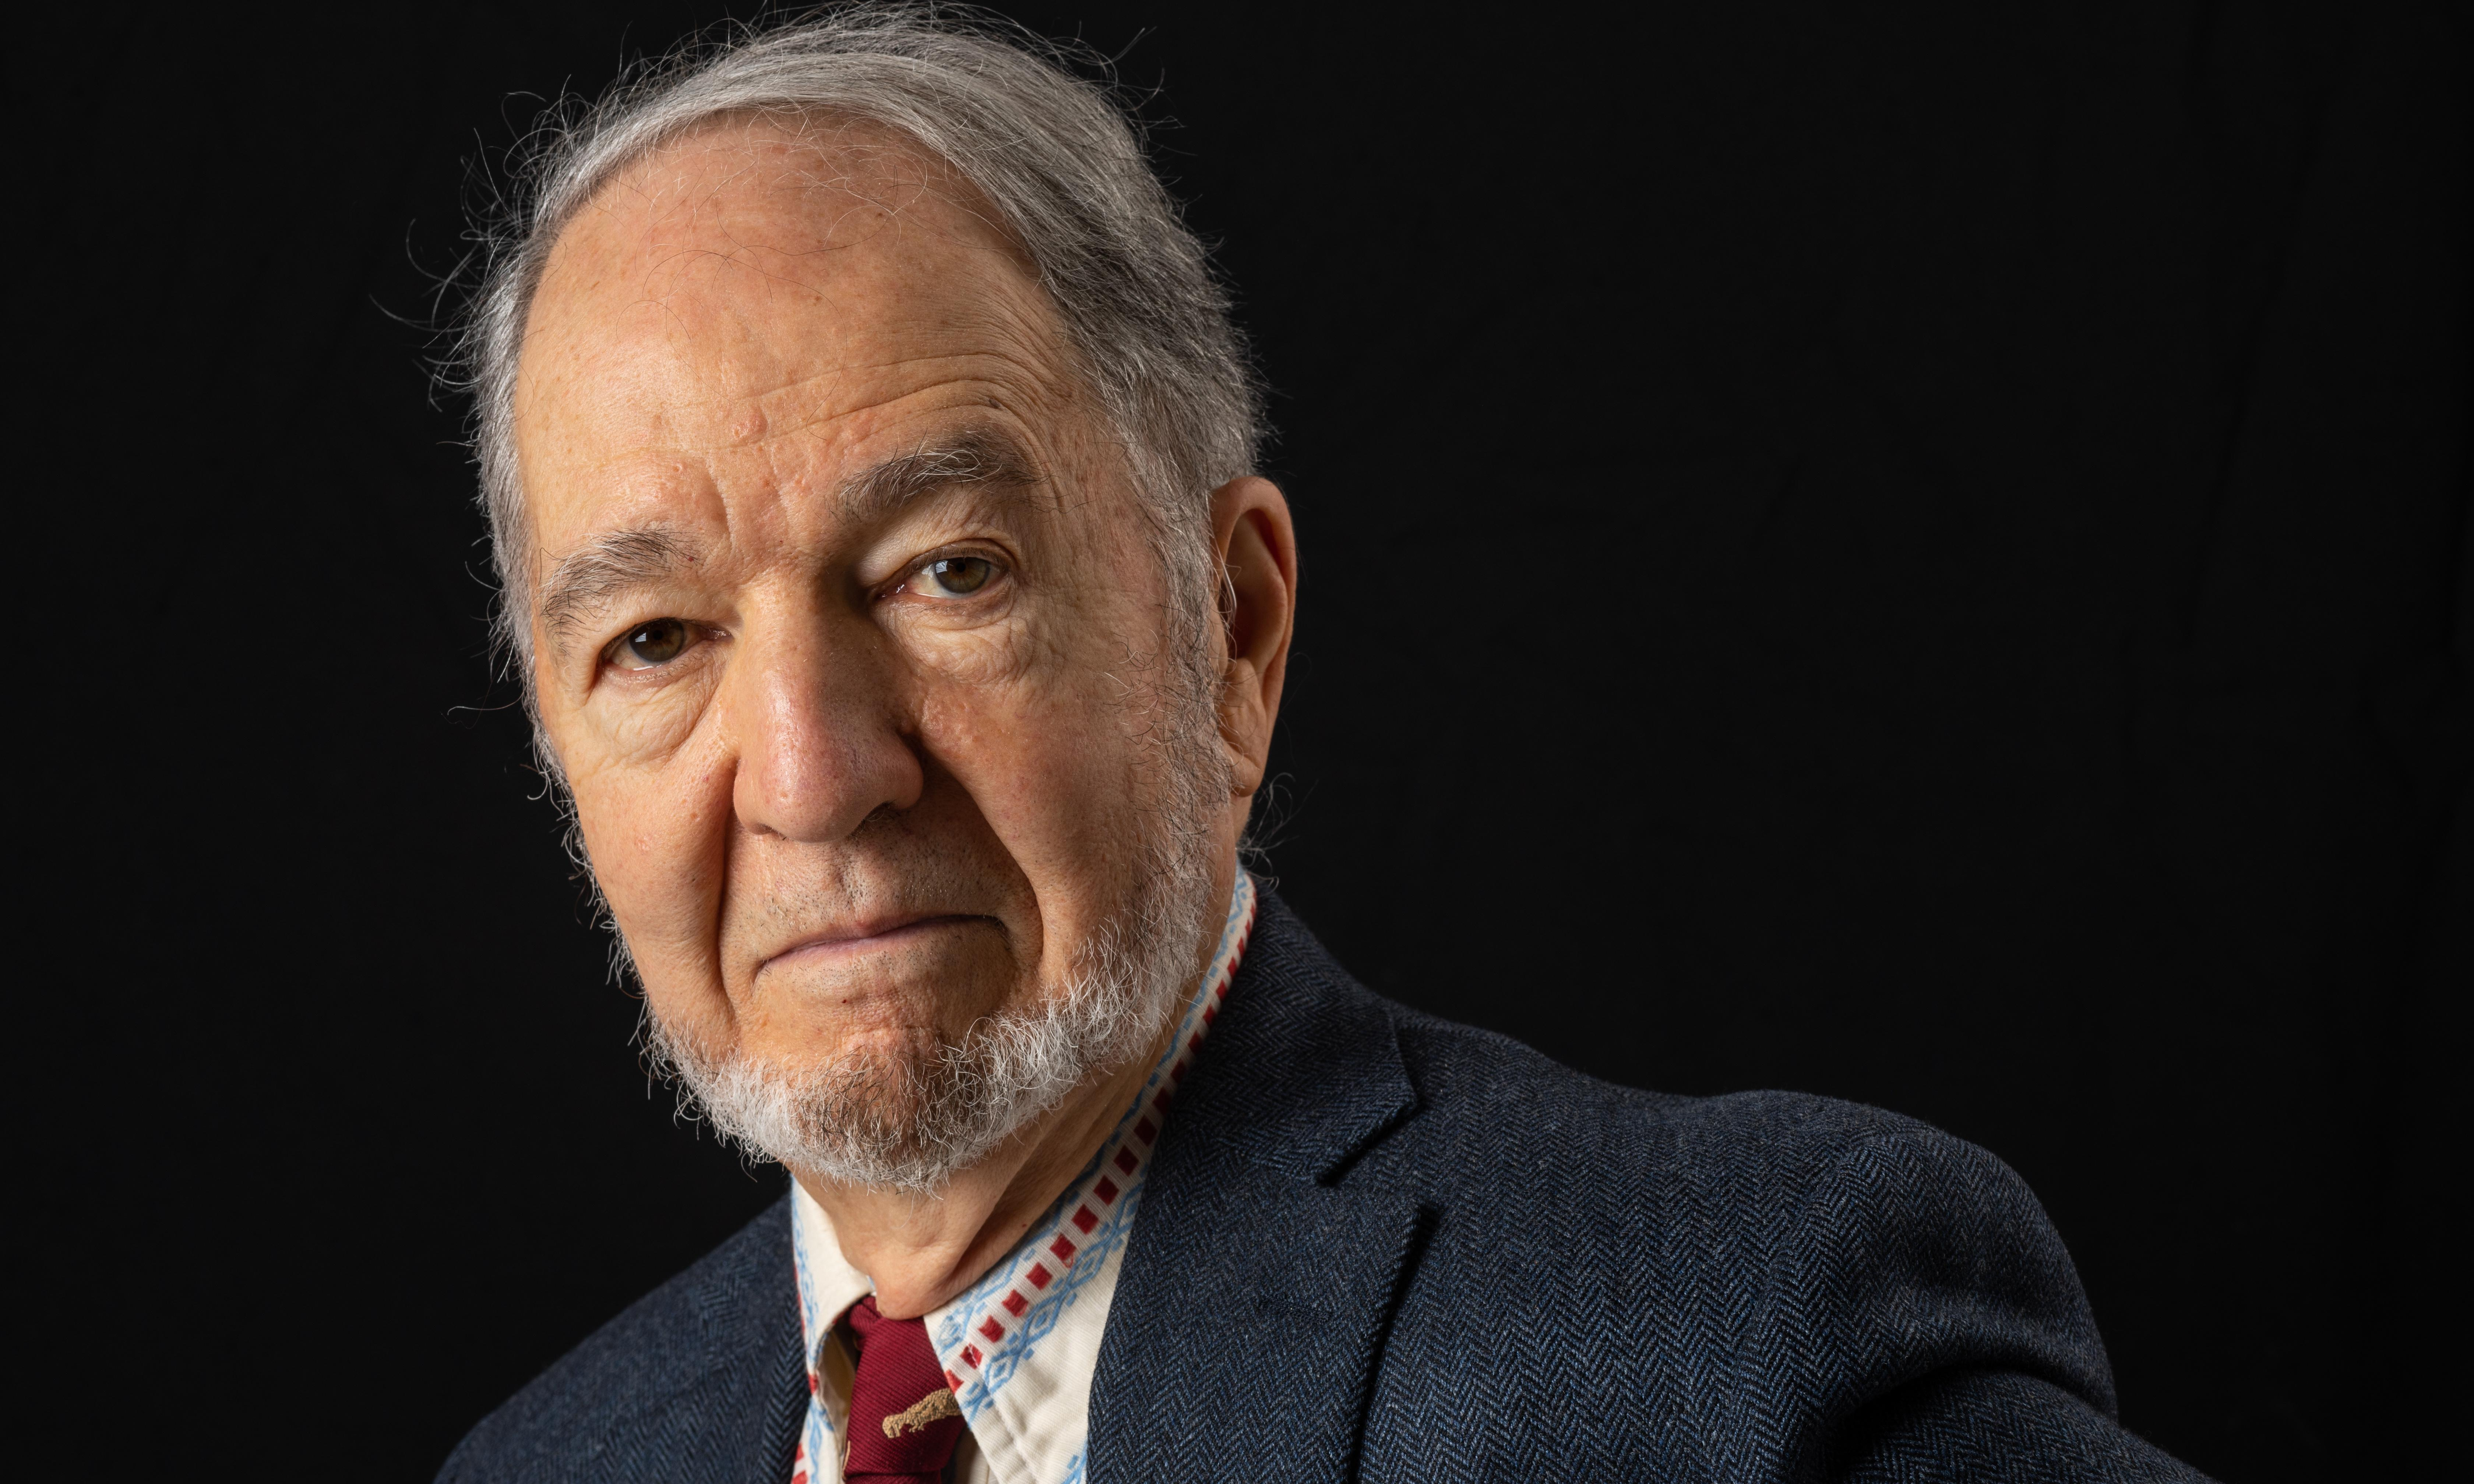 Jared Diamond: So how do states recover from crises? Same way as people do